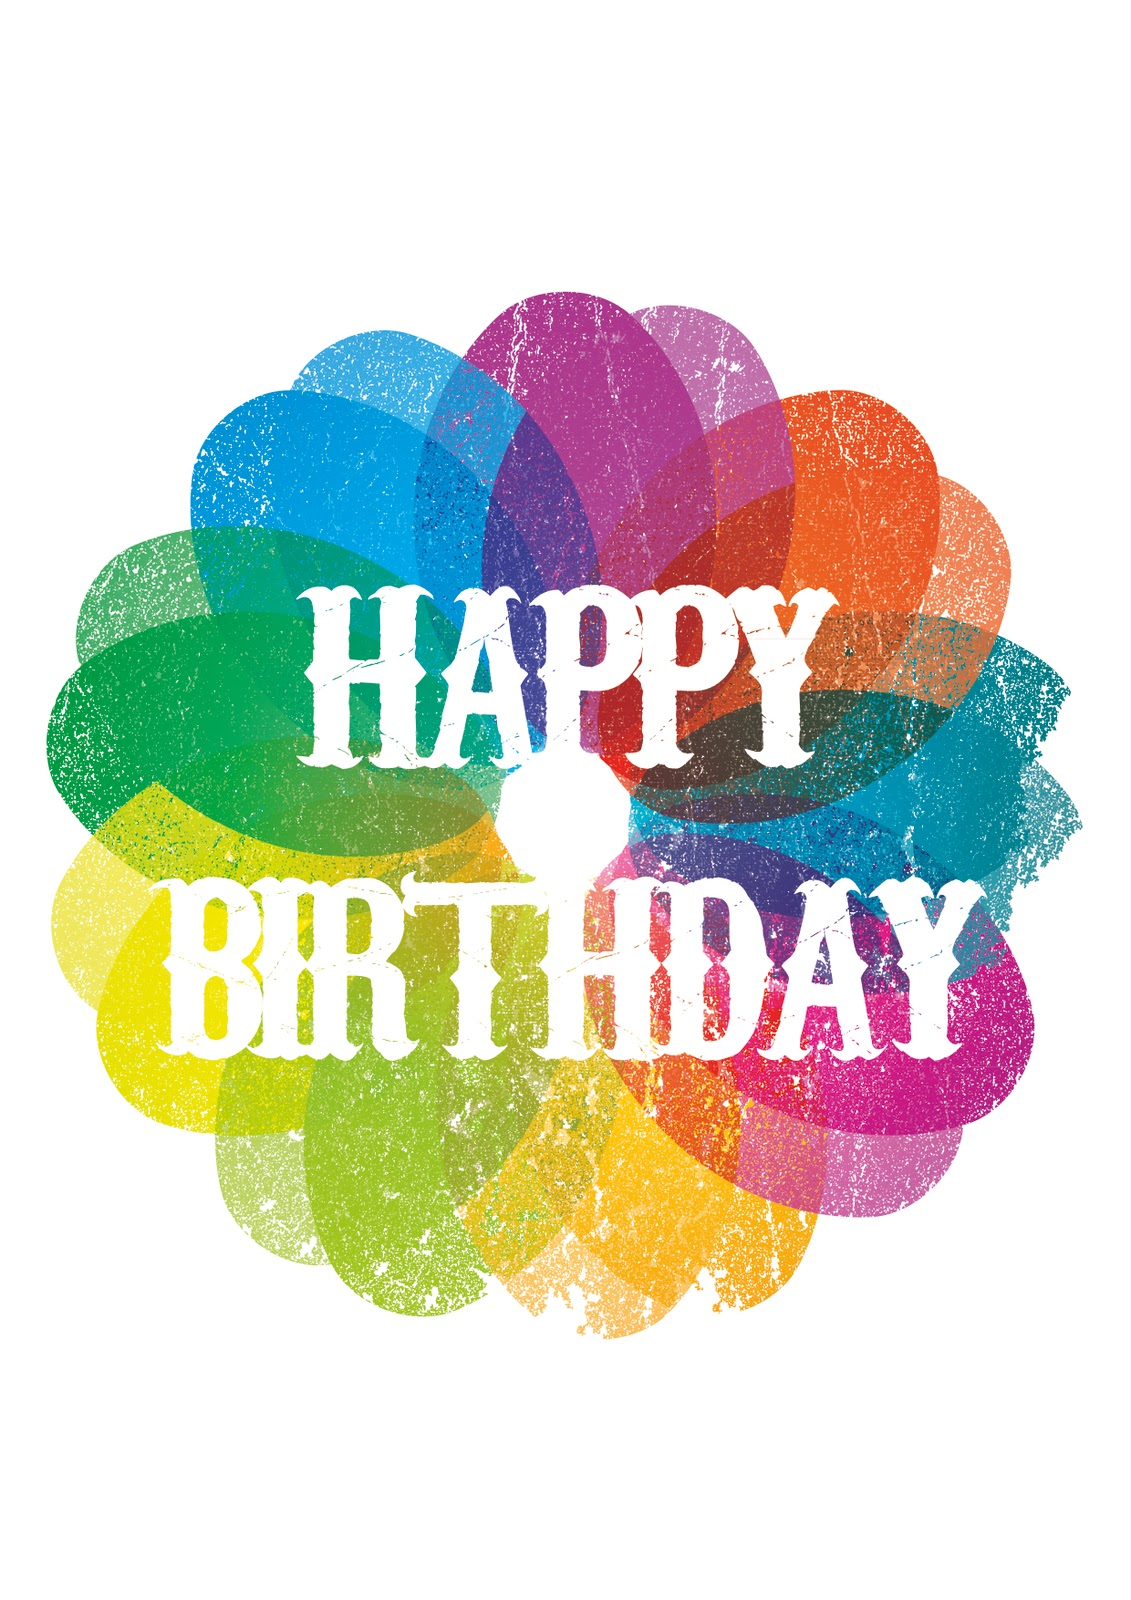 Lummy Print Design Happy Birthday Alice Cake Images Happy Birthday Alice Images Birthday Happy Birthday Alice Potter Illustration houzz-03 Happy Birthday Alice